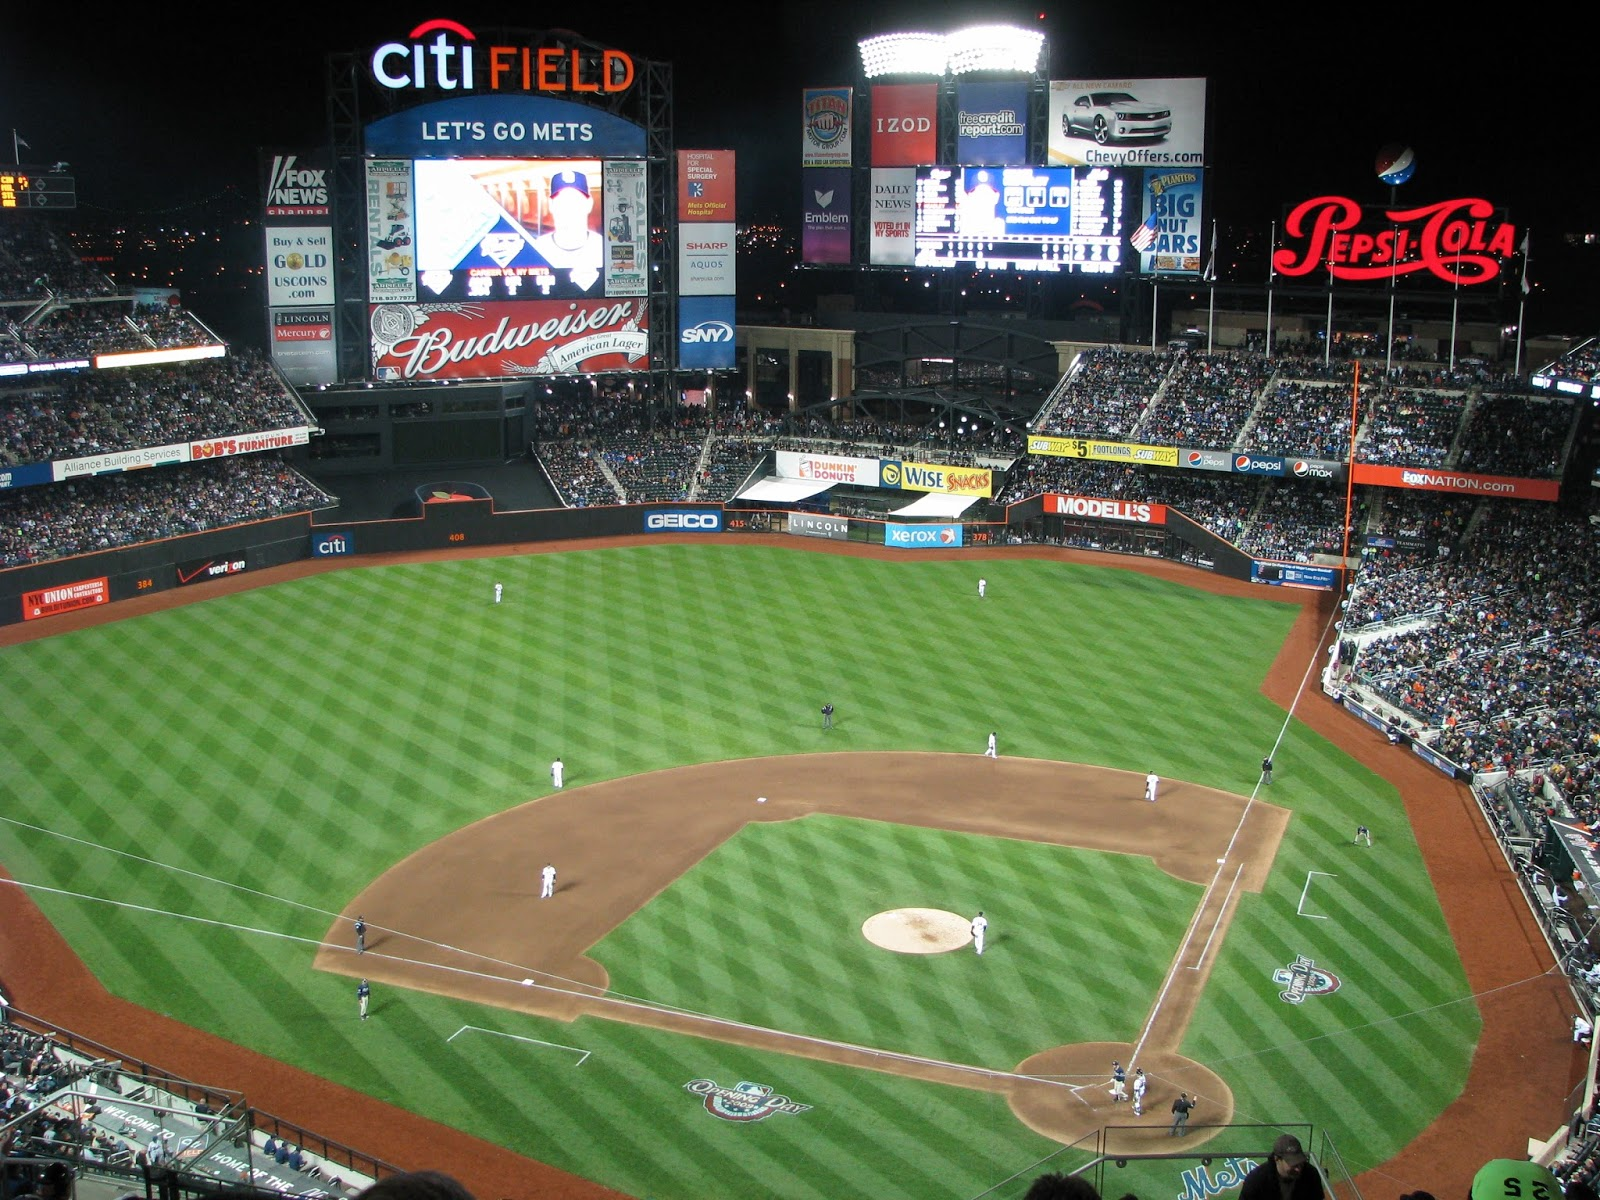 fb5bce64cd5dfe Prepare for Baseball 2017: Plan a Fancation to Citi Field to See the ...